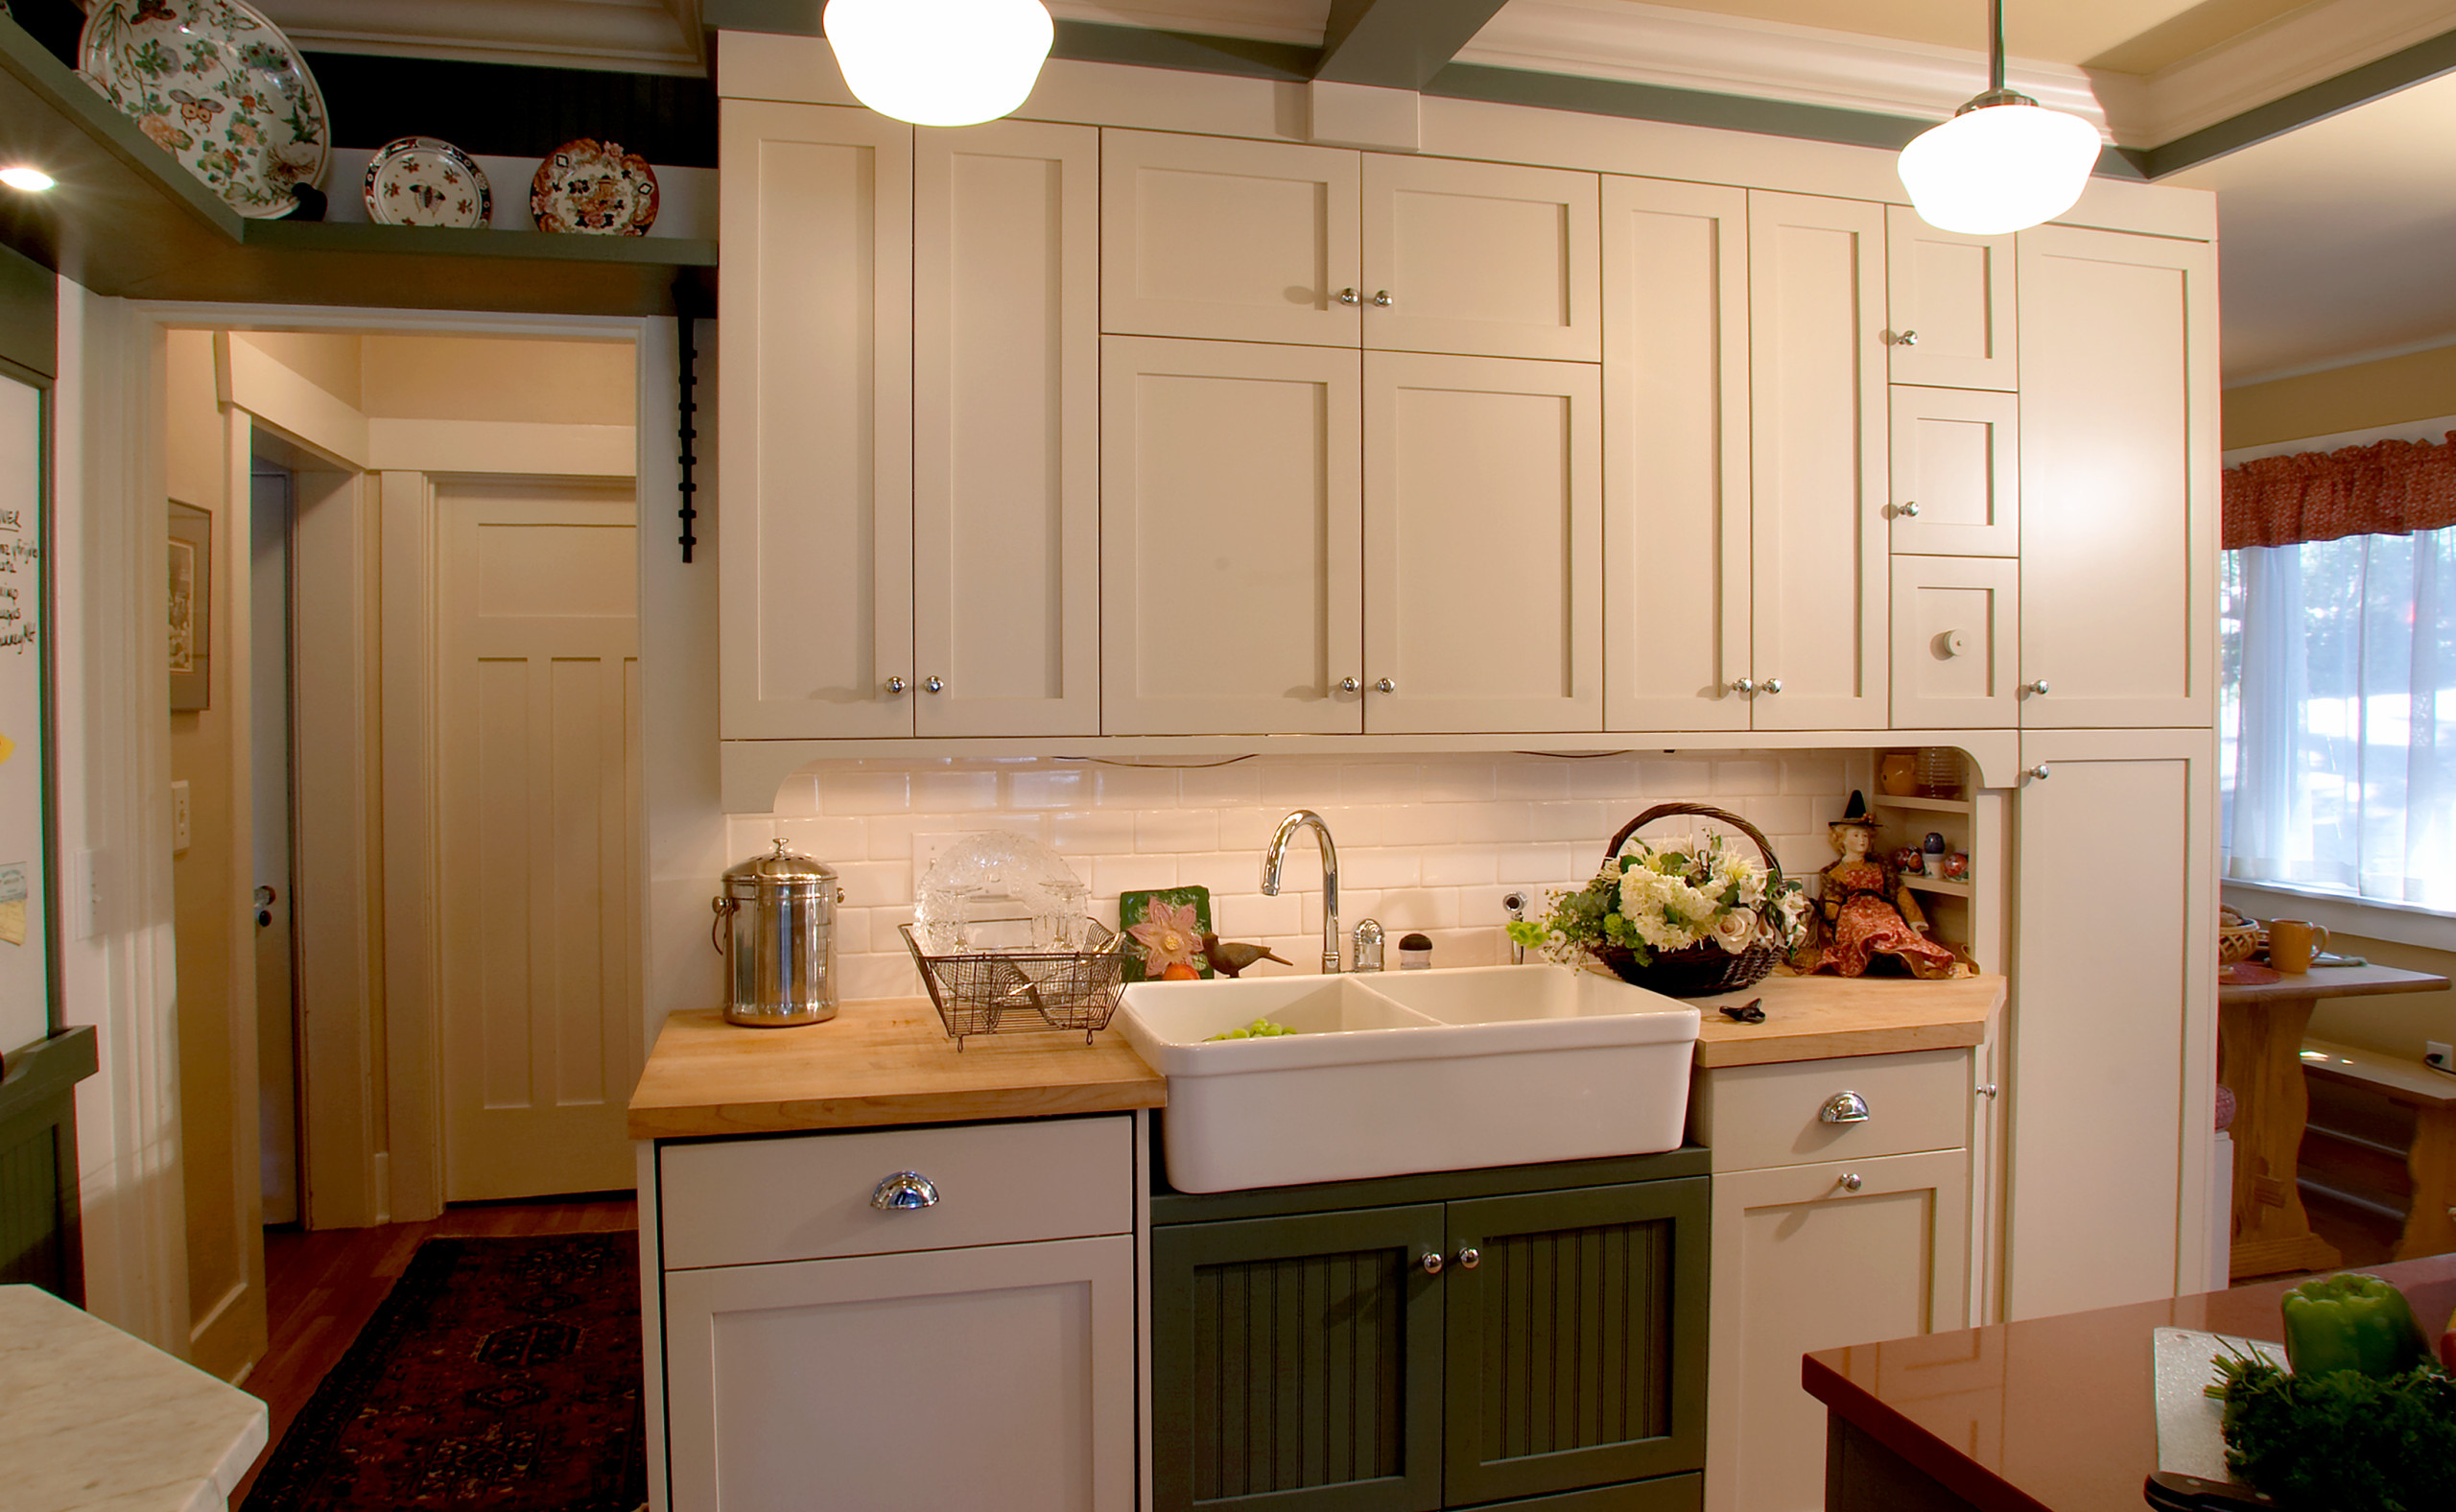 Phinney Ridge Kitchen, Dining Room, Front Entry Remodel - Home Birth Year 1023